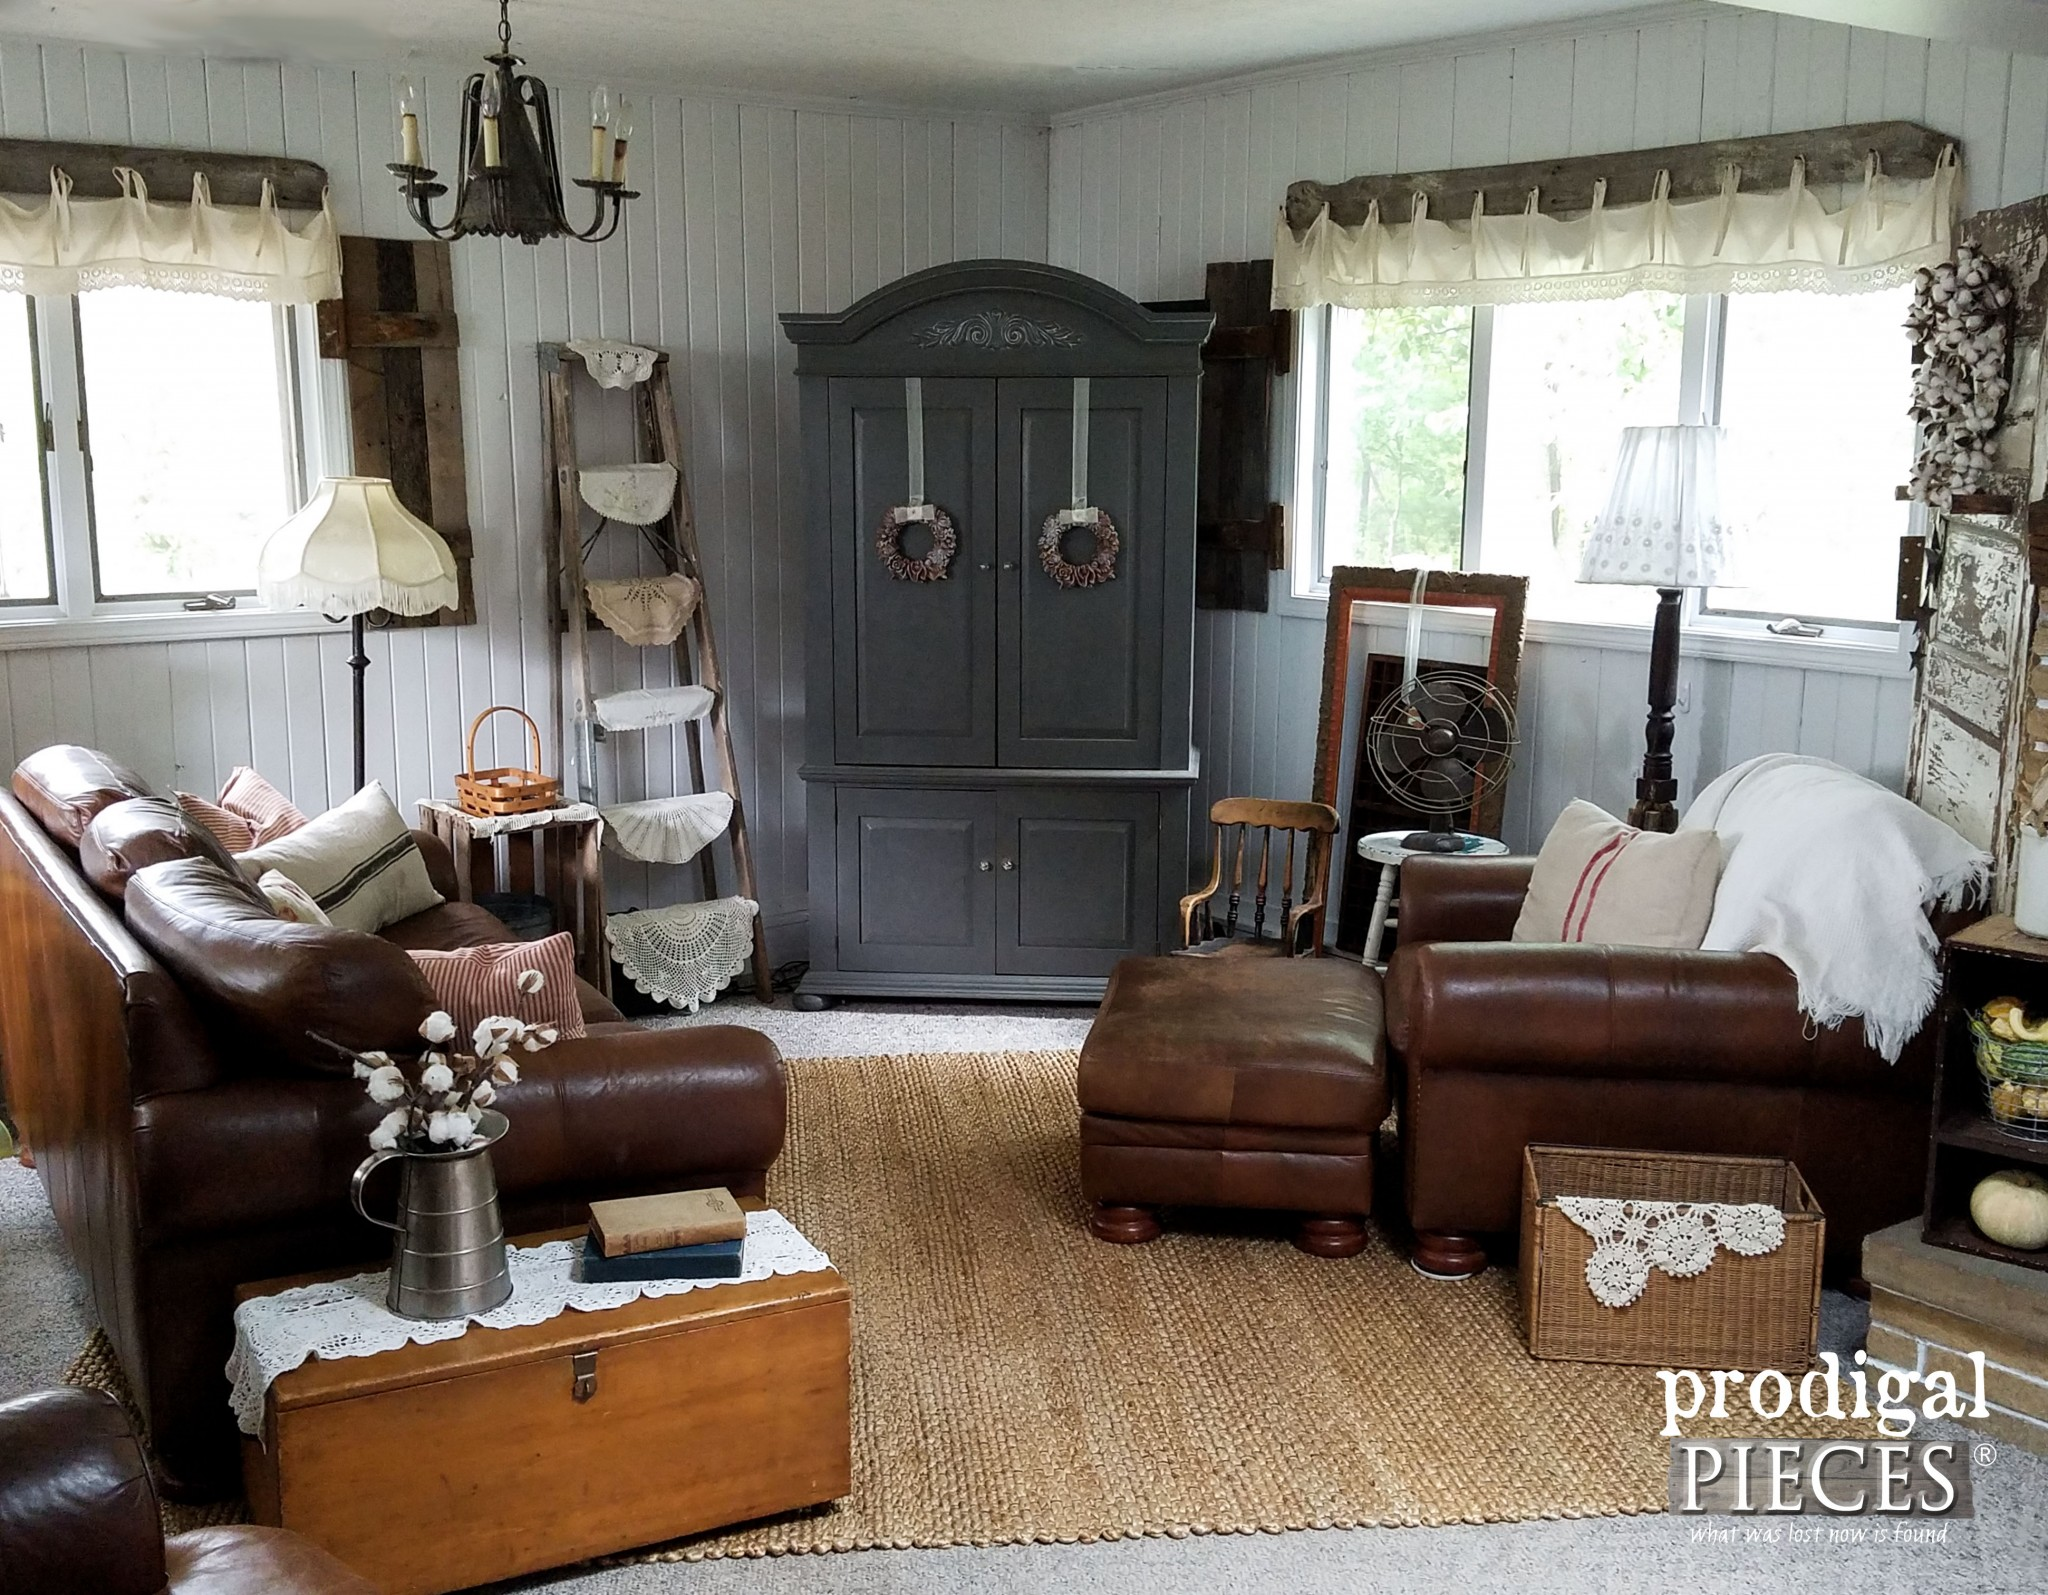 Farmhouse Family Room with Natural Jute Area Rug | Affordable Area Rugs featured by Prodigal Pieces | www.prodigalpieces.com